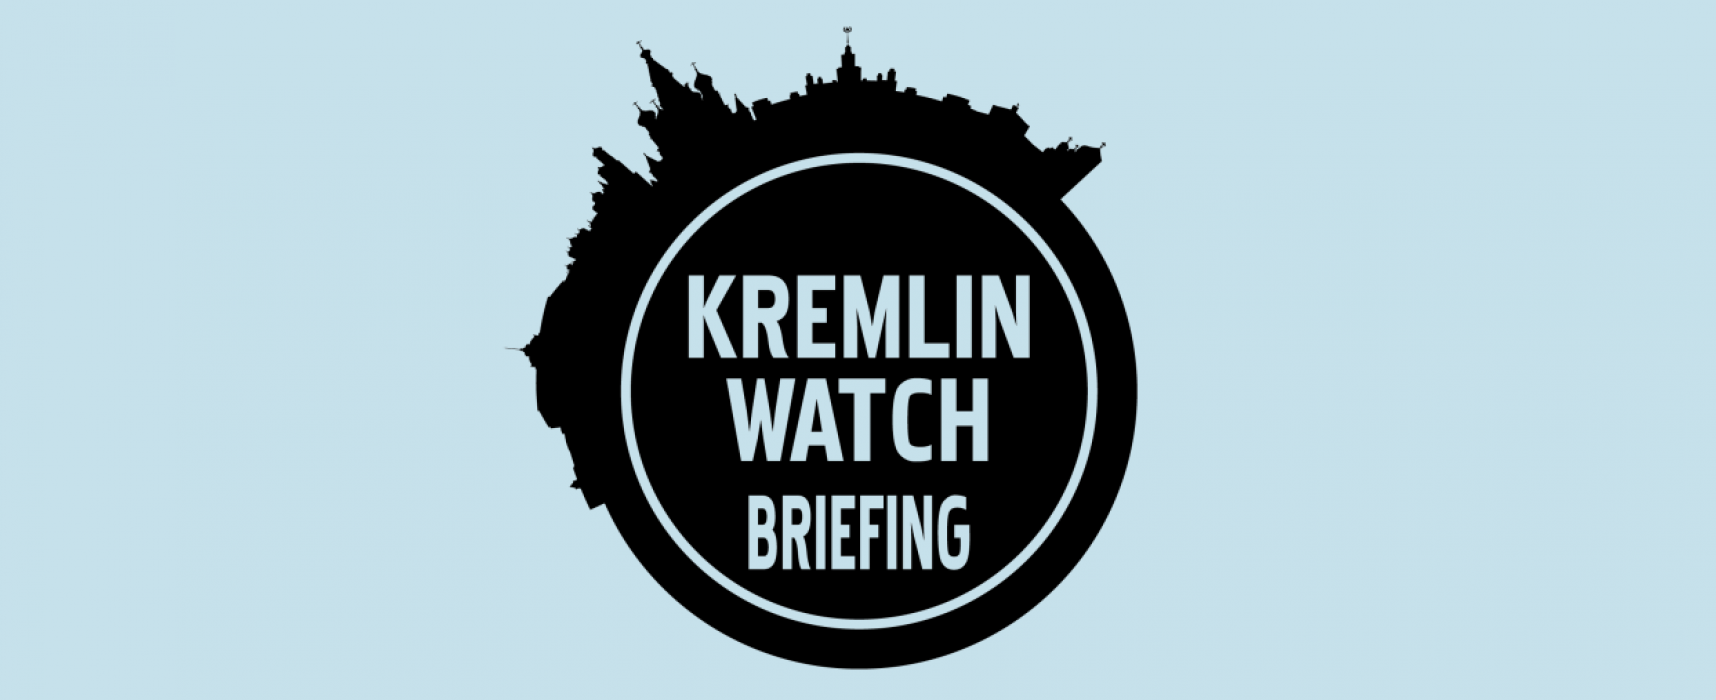 Kremlin Watch Briefing: The Kremlin keeps twisting history with little repercussion